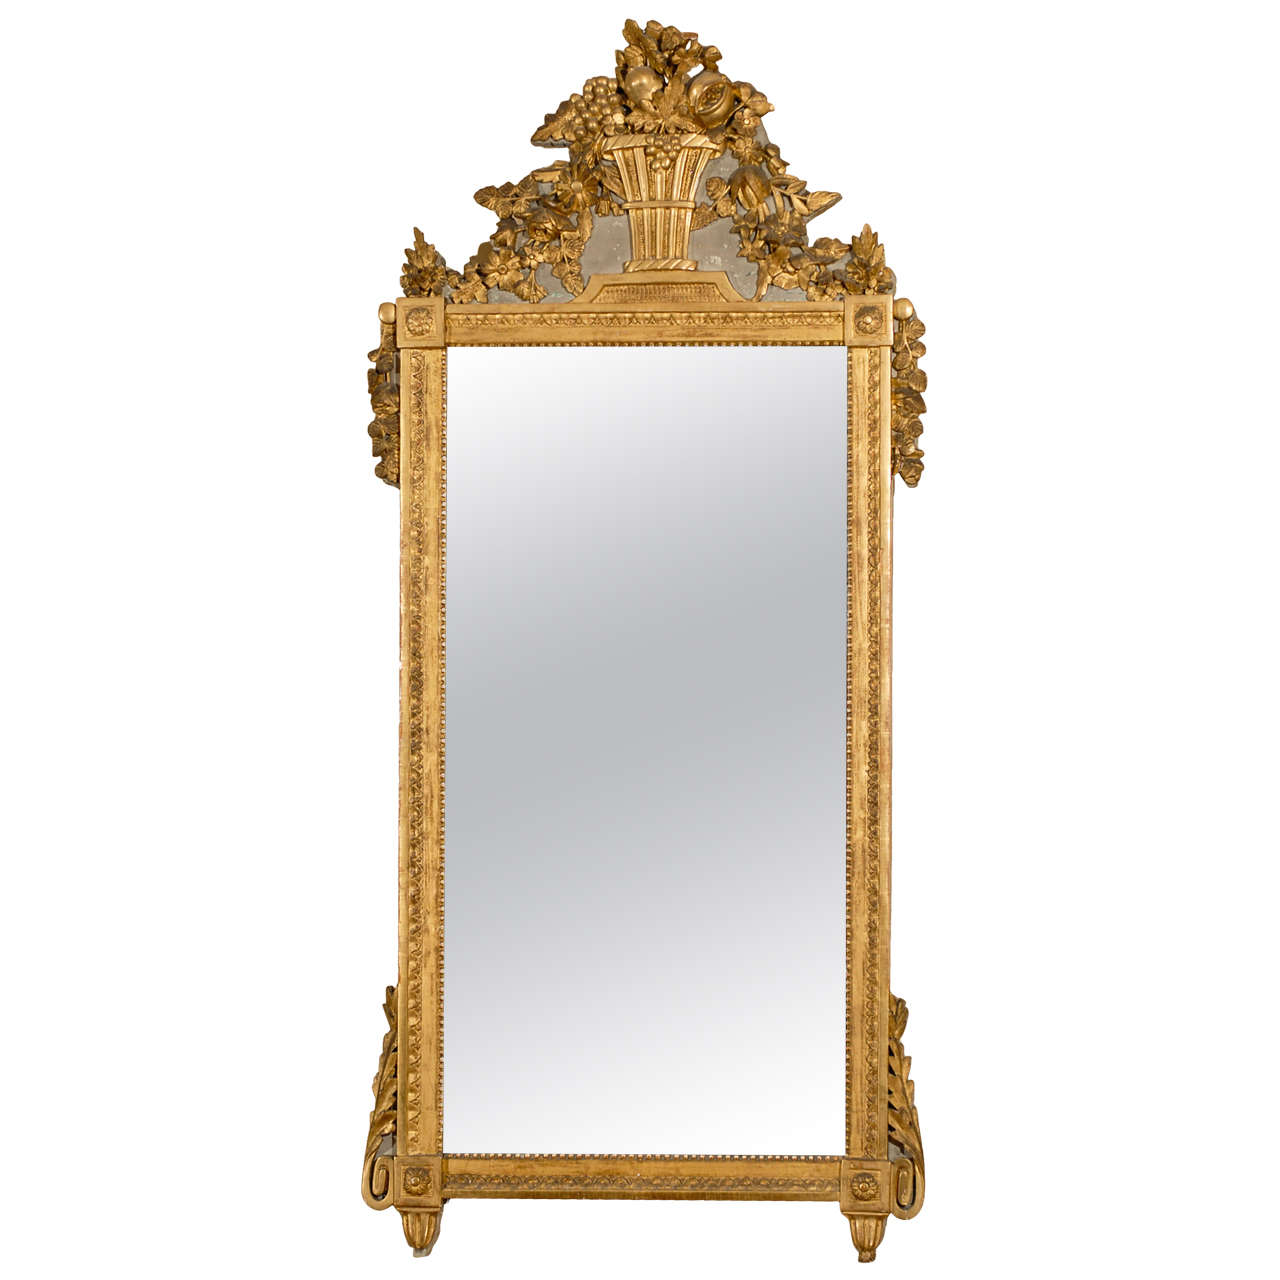 Large Louis XVI Gilt-Wood & Painted Mirror with Basket of Fruit, France